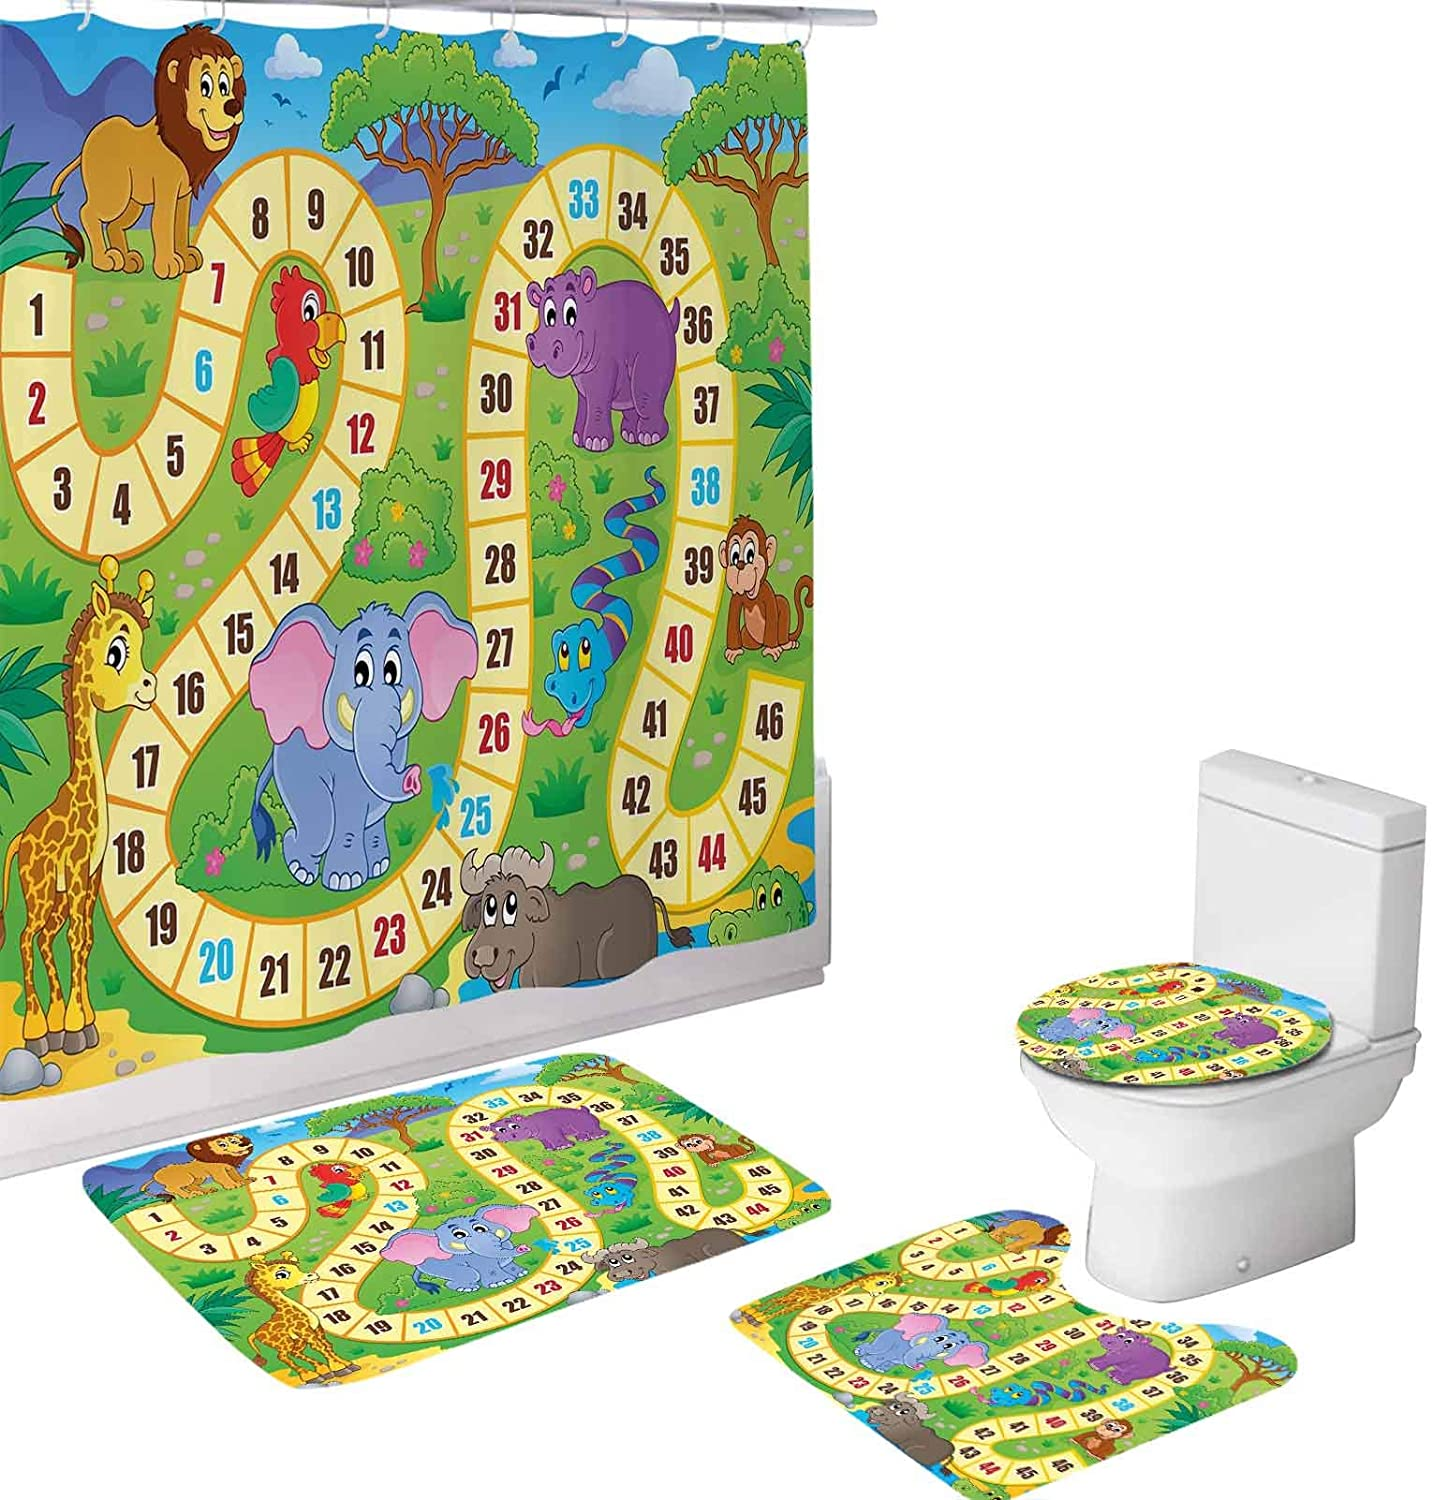 Board 4 Piece Bathroom Set,African Safari Concept Wildlife Hippo Giraffe,72